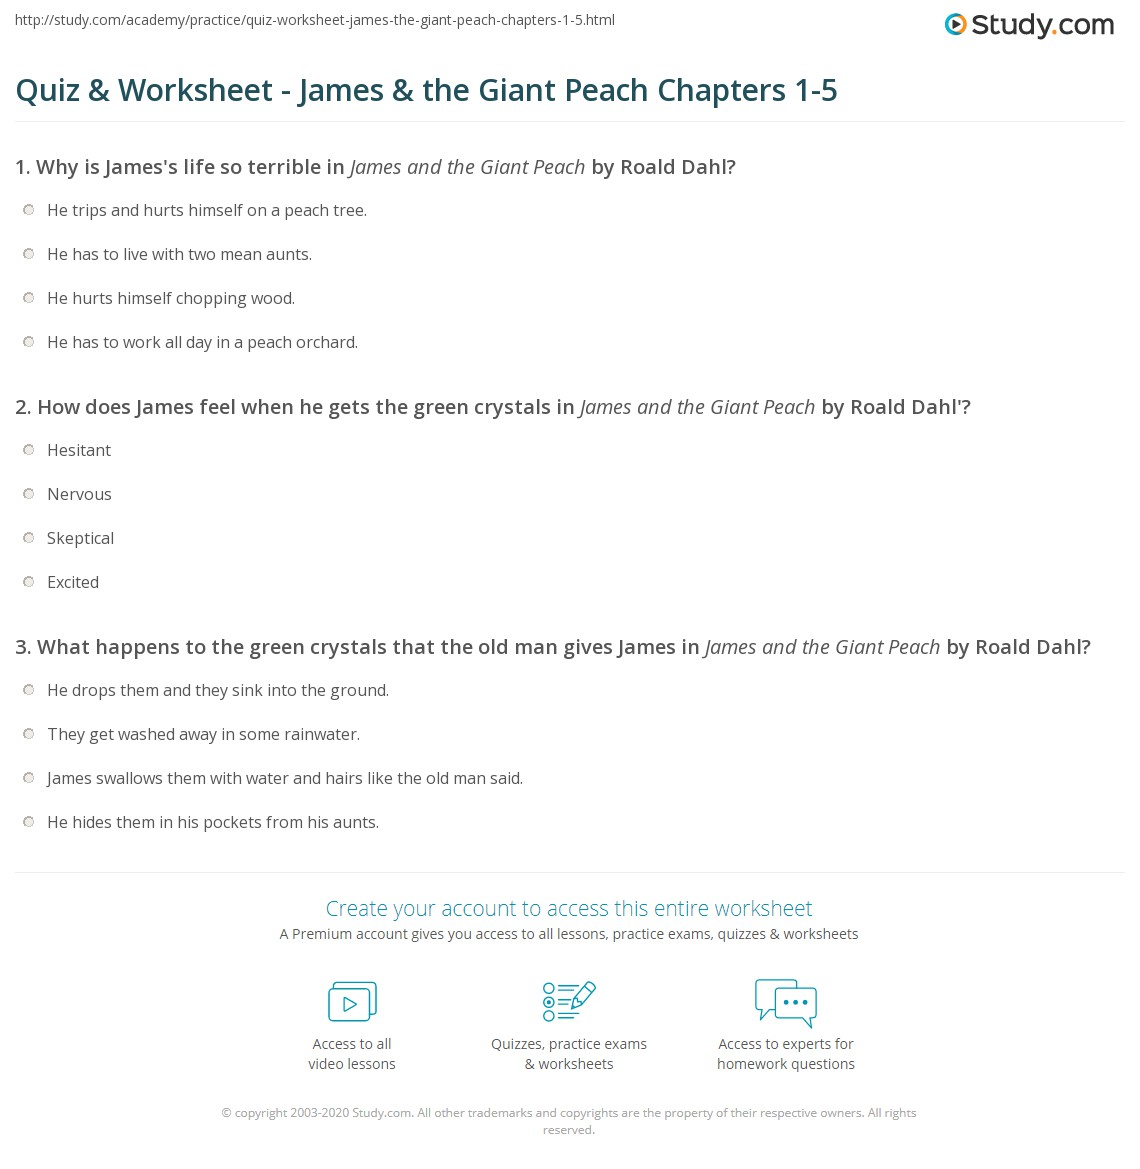 Worksheets James And The Giant Peach Worksheets quiz worksheet james the giant peach chapters 1 5 study com print summaries worksheet